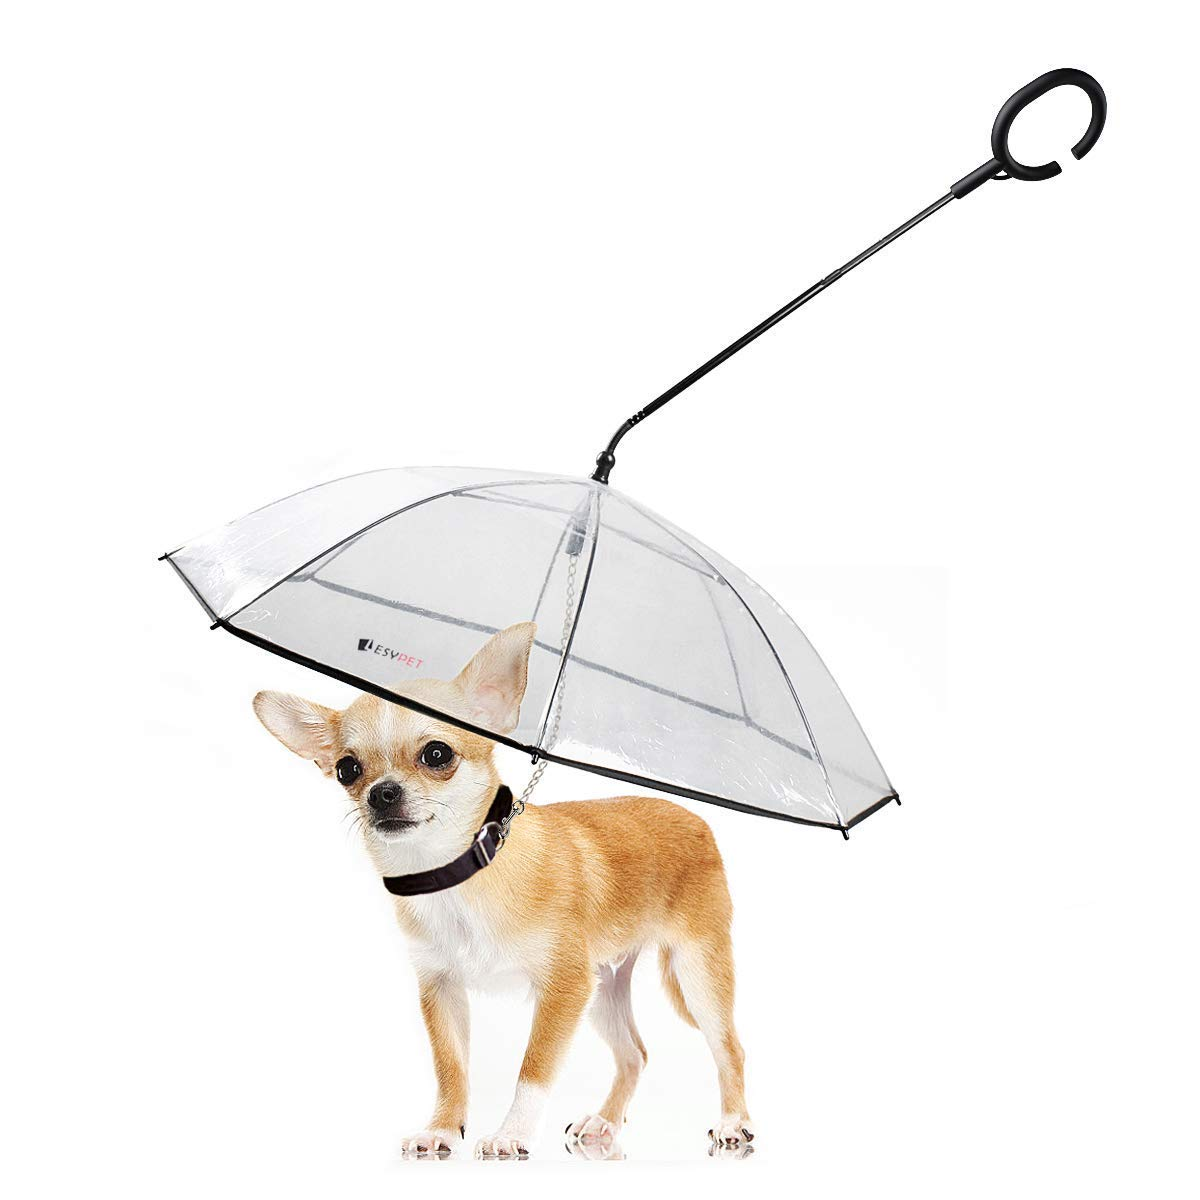 LESYPET Dog Umbrella - Adjustable Pet Dog Umbrella with Leash for Small Pets (Upgraded Flexible Handle) by LESYPET